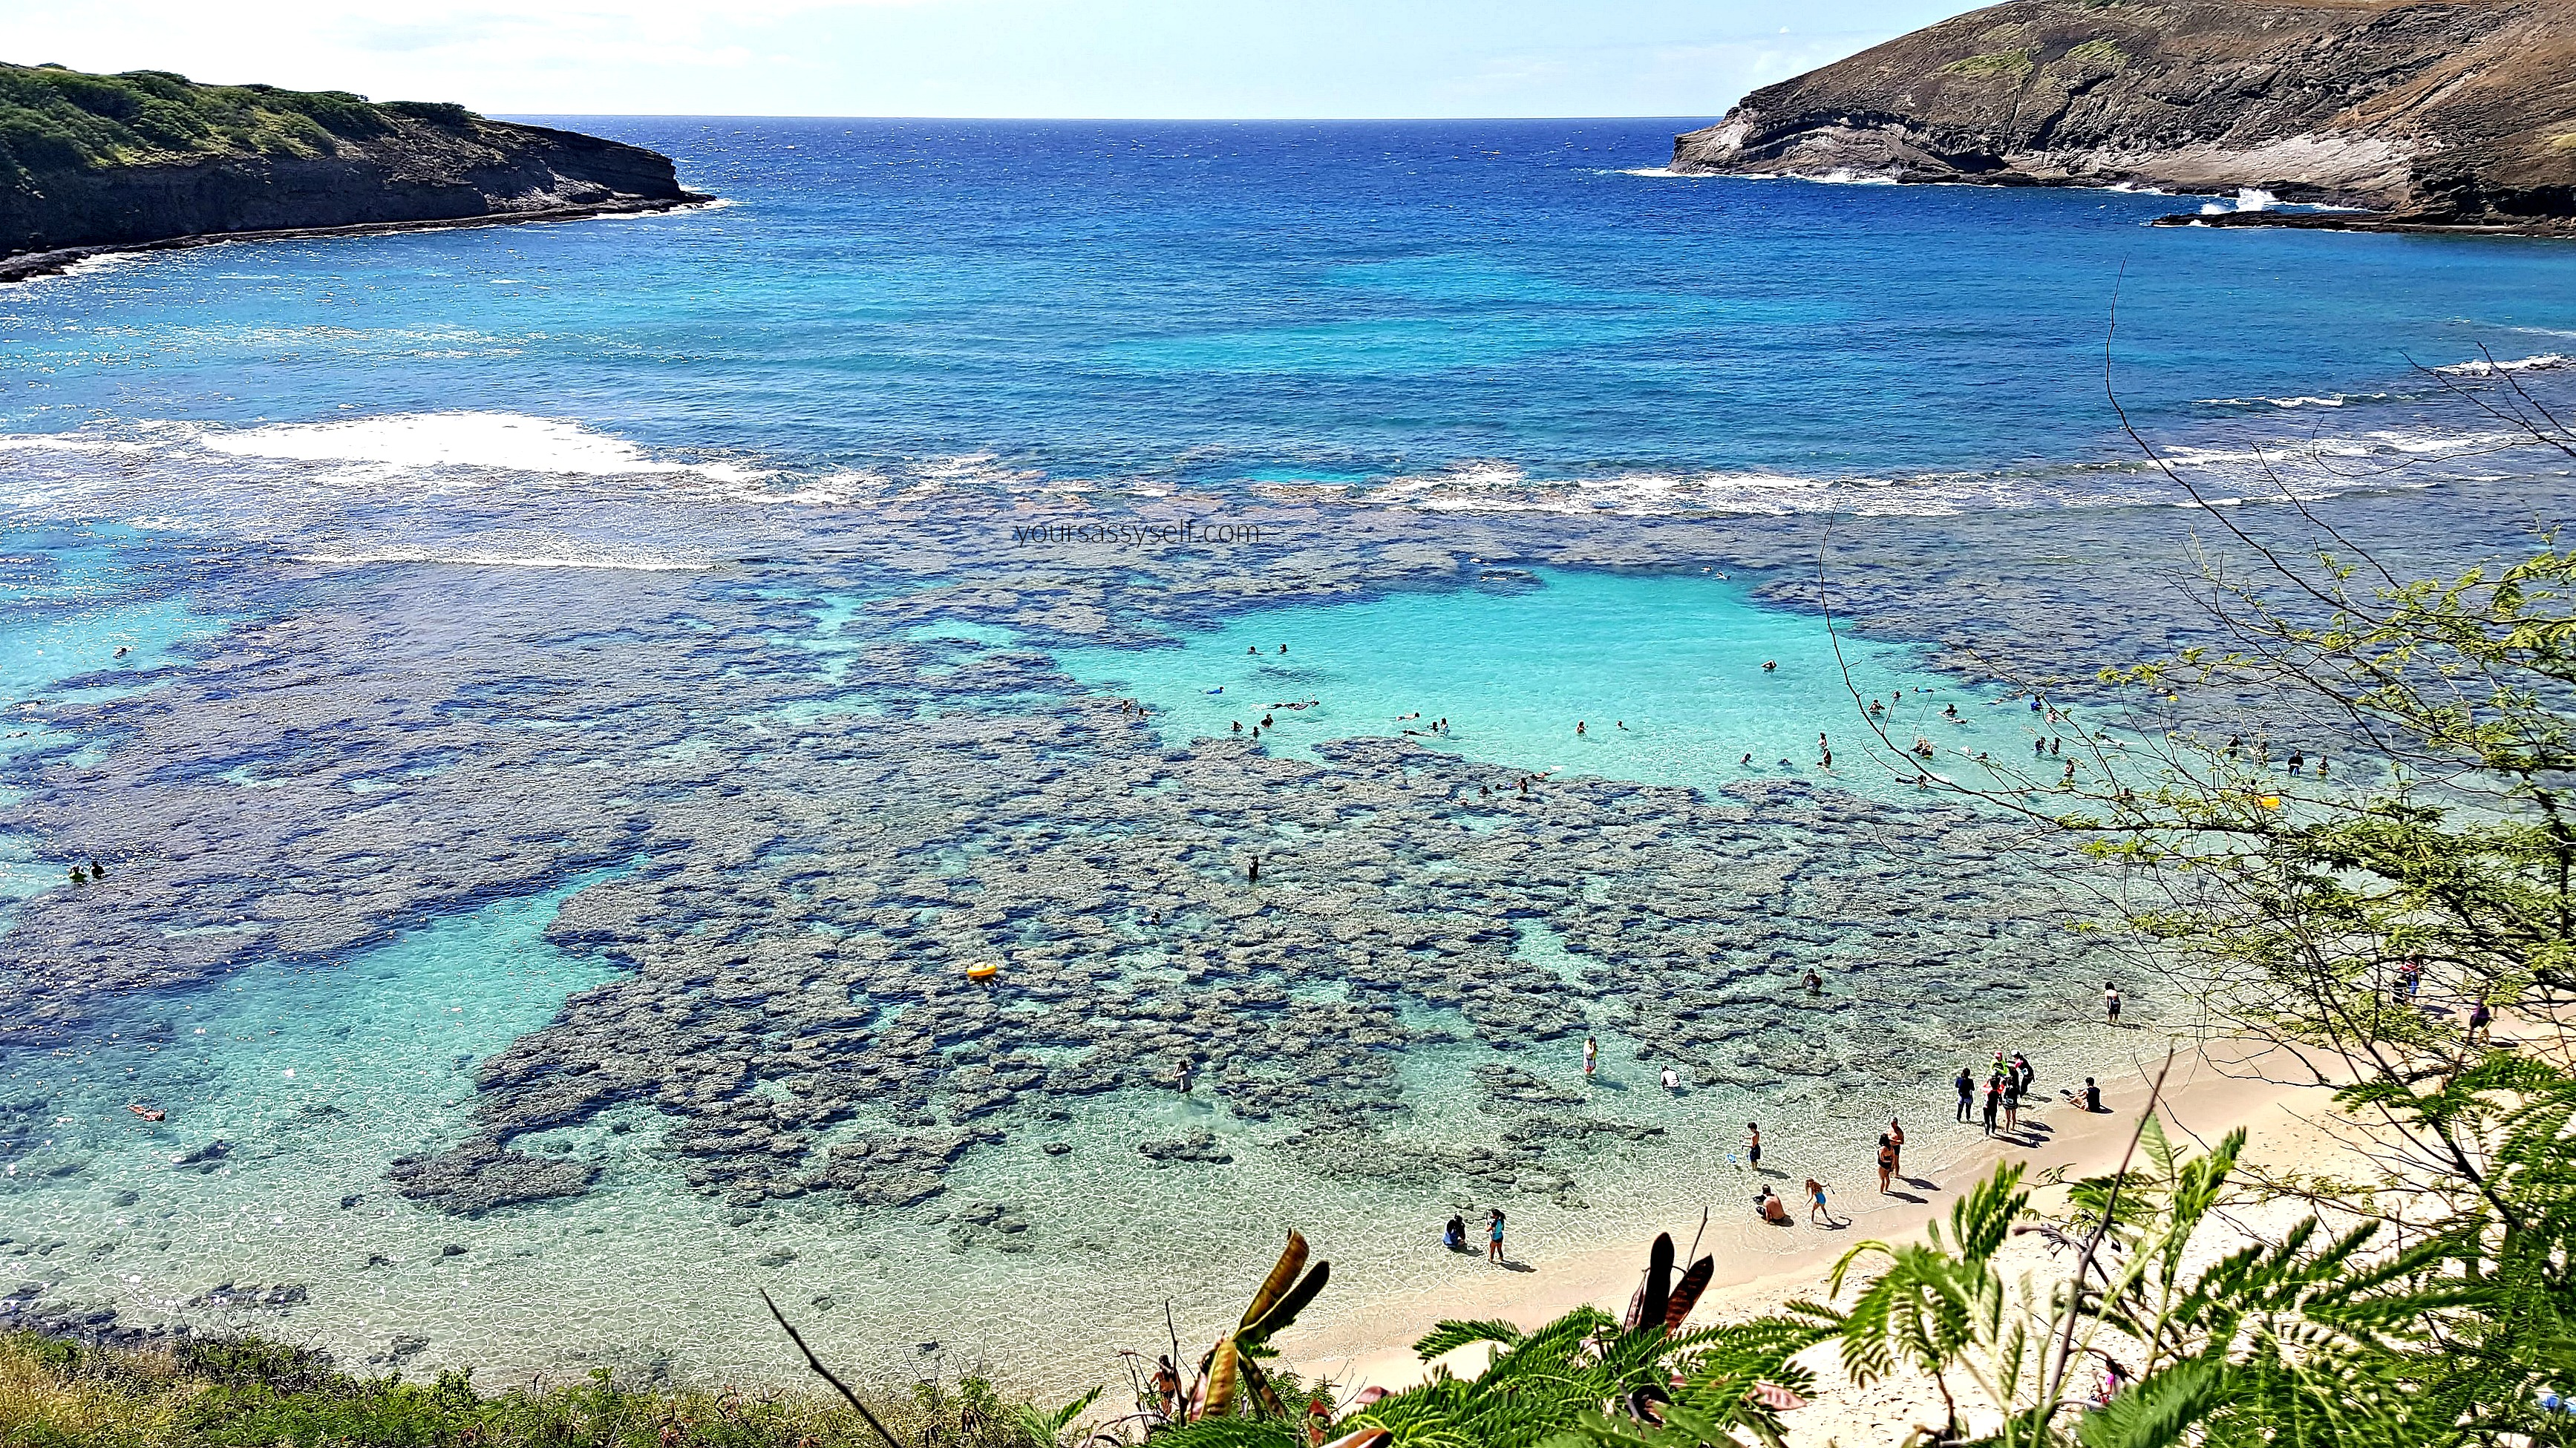 View of Hanauma Bay Reefs - yoursassyself.com